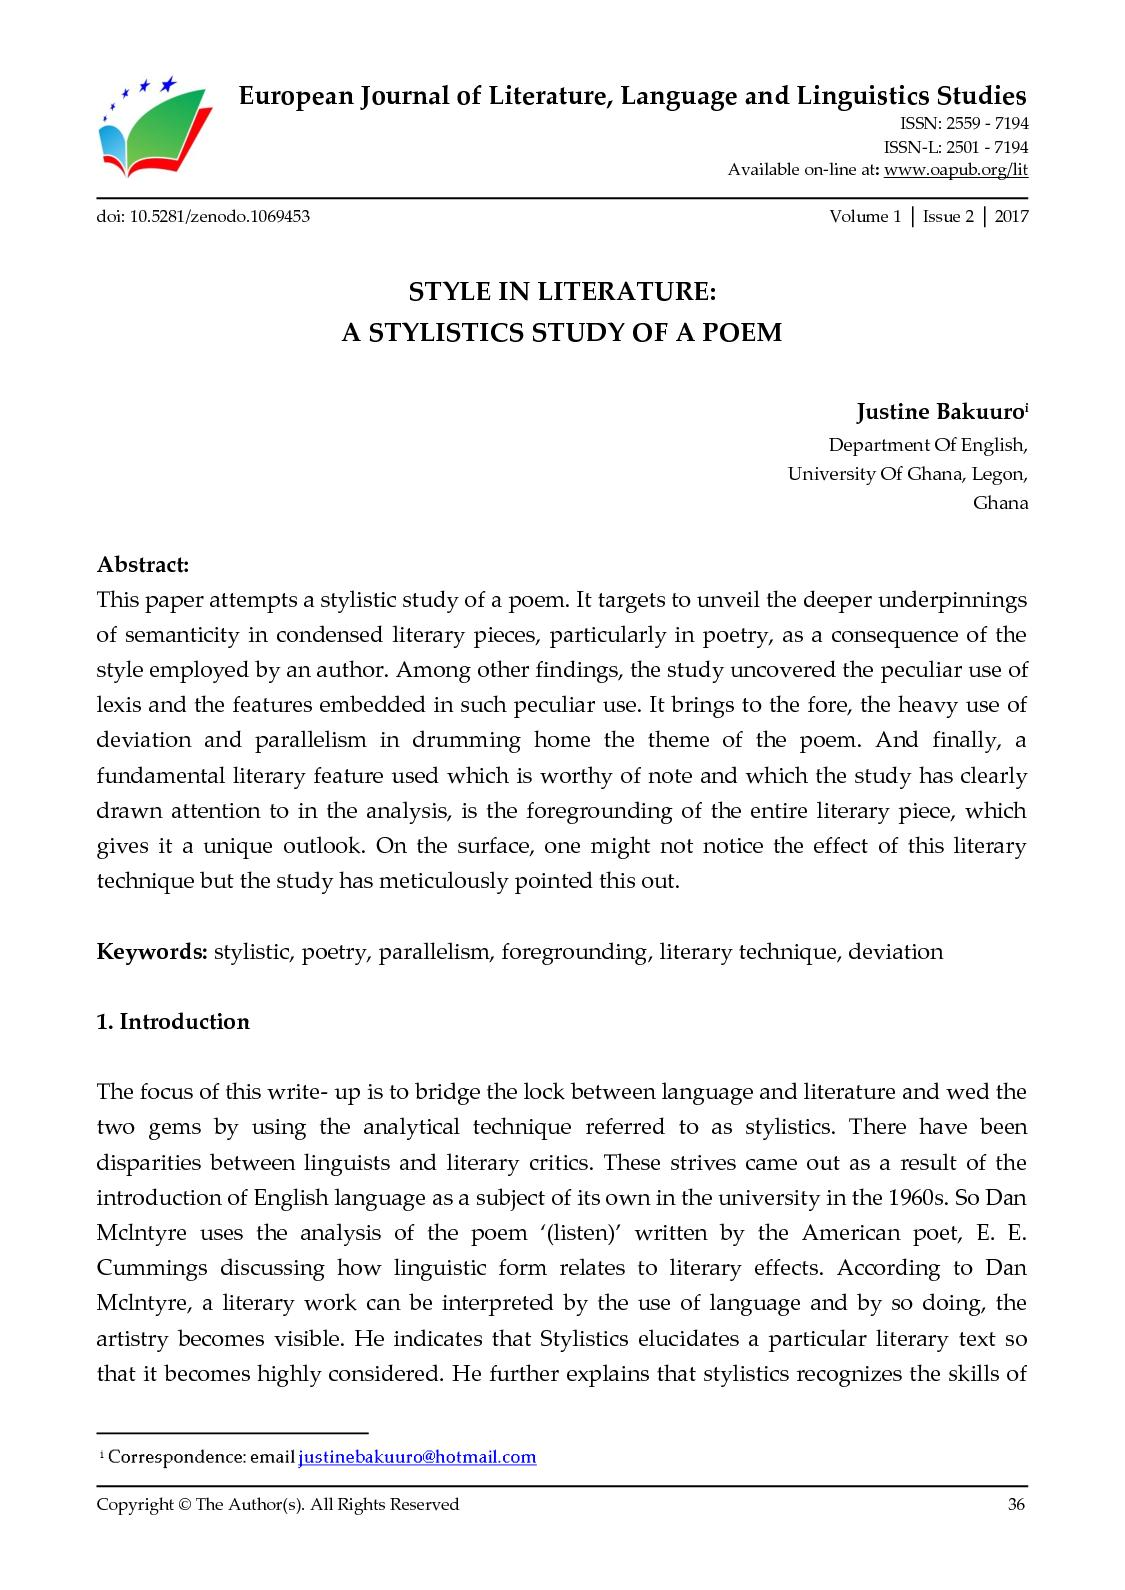 Calaméo - STYLE IN LITERATURE: A STYLISTICS STUDY OF A POEM